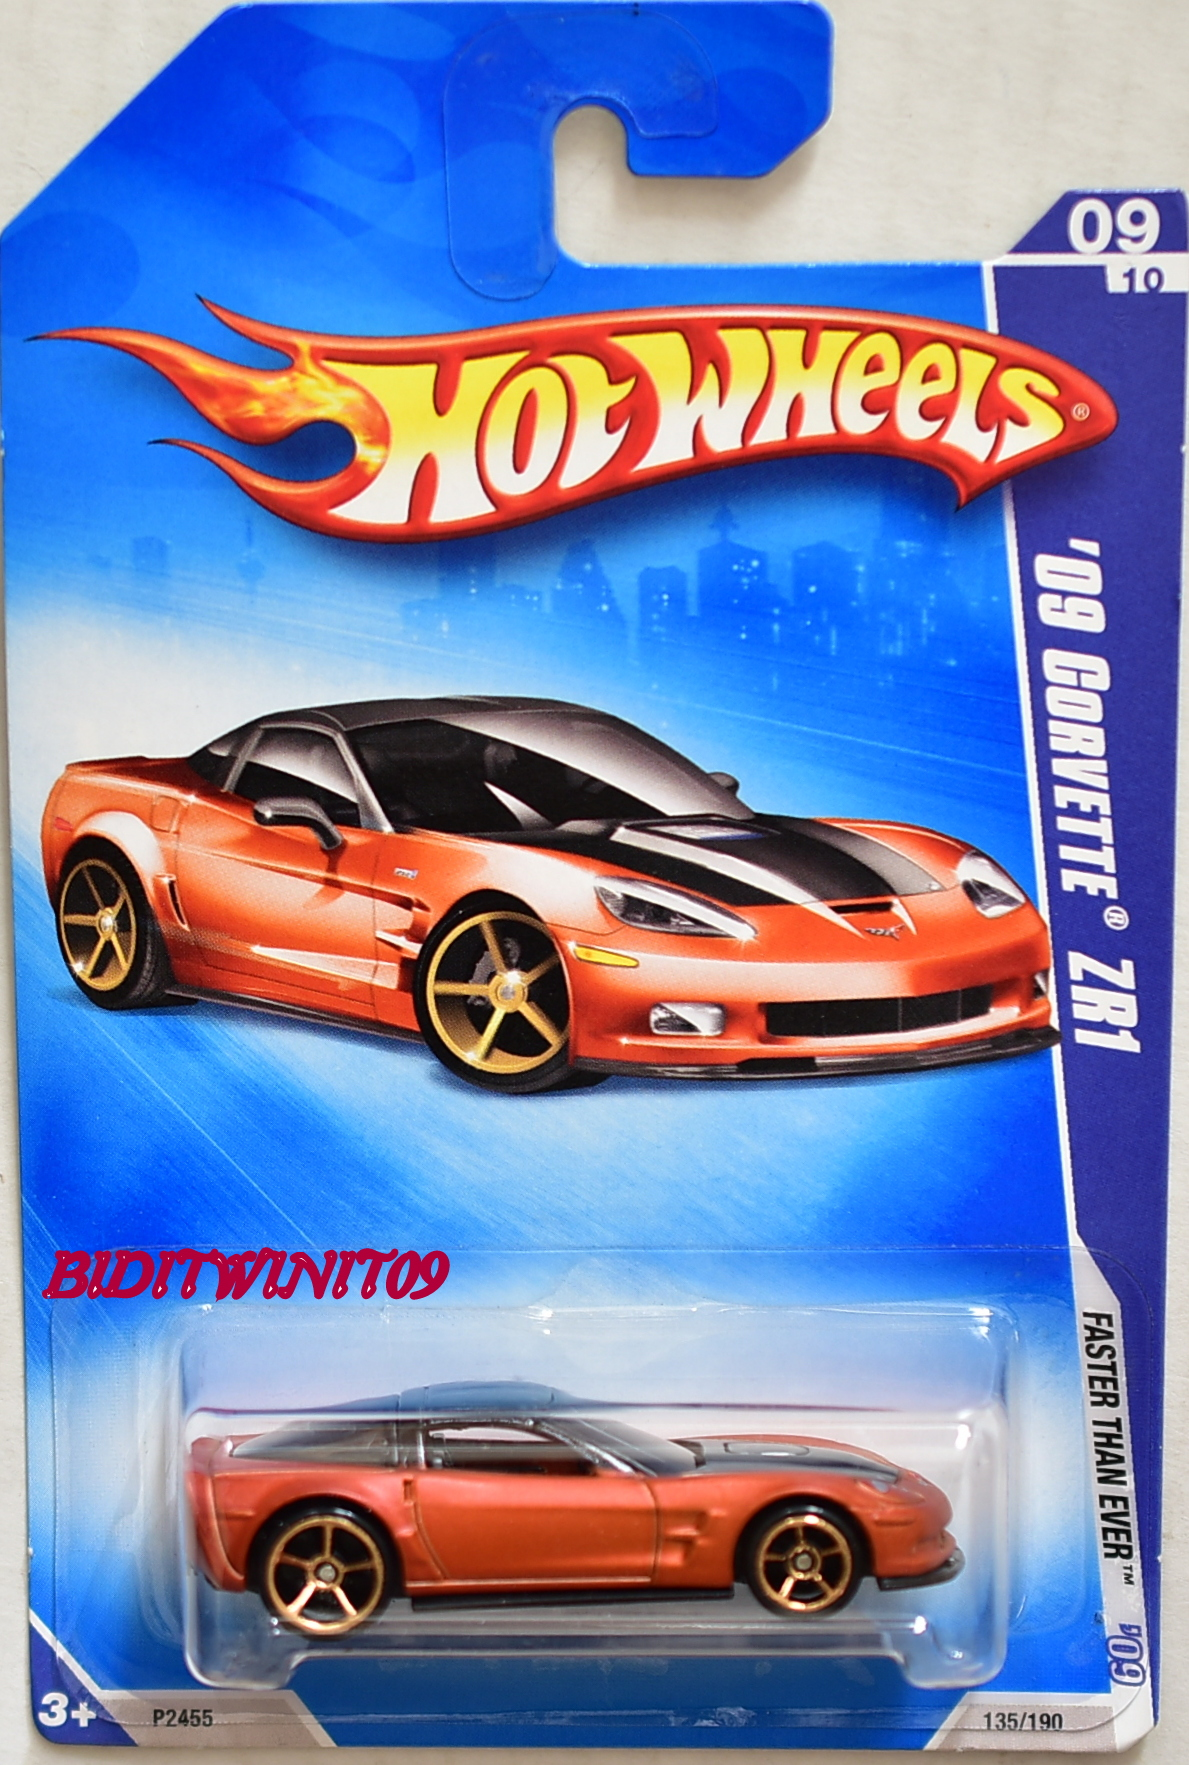 HOT WHEELS 2009 FASTER THAN EVER '09 CORVETTE ZR1 #09/10 BRONZE